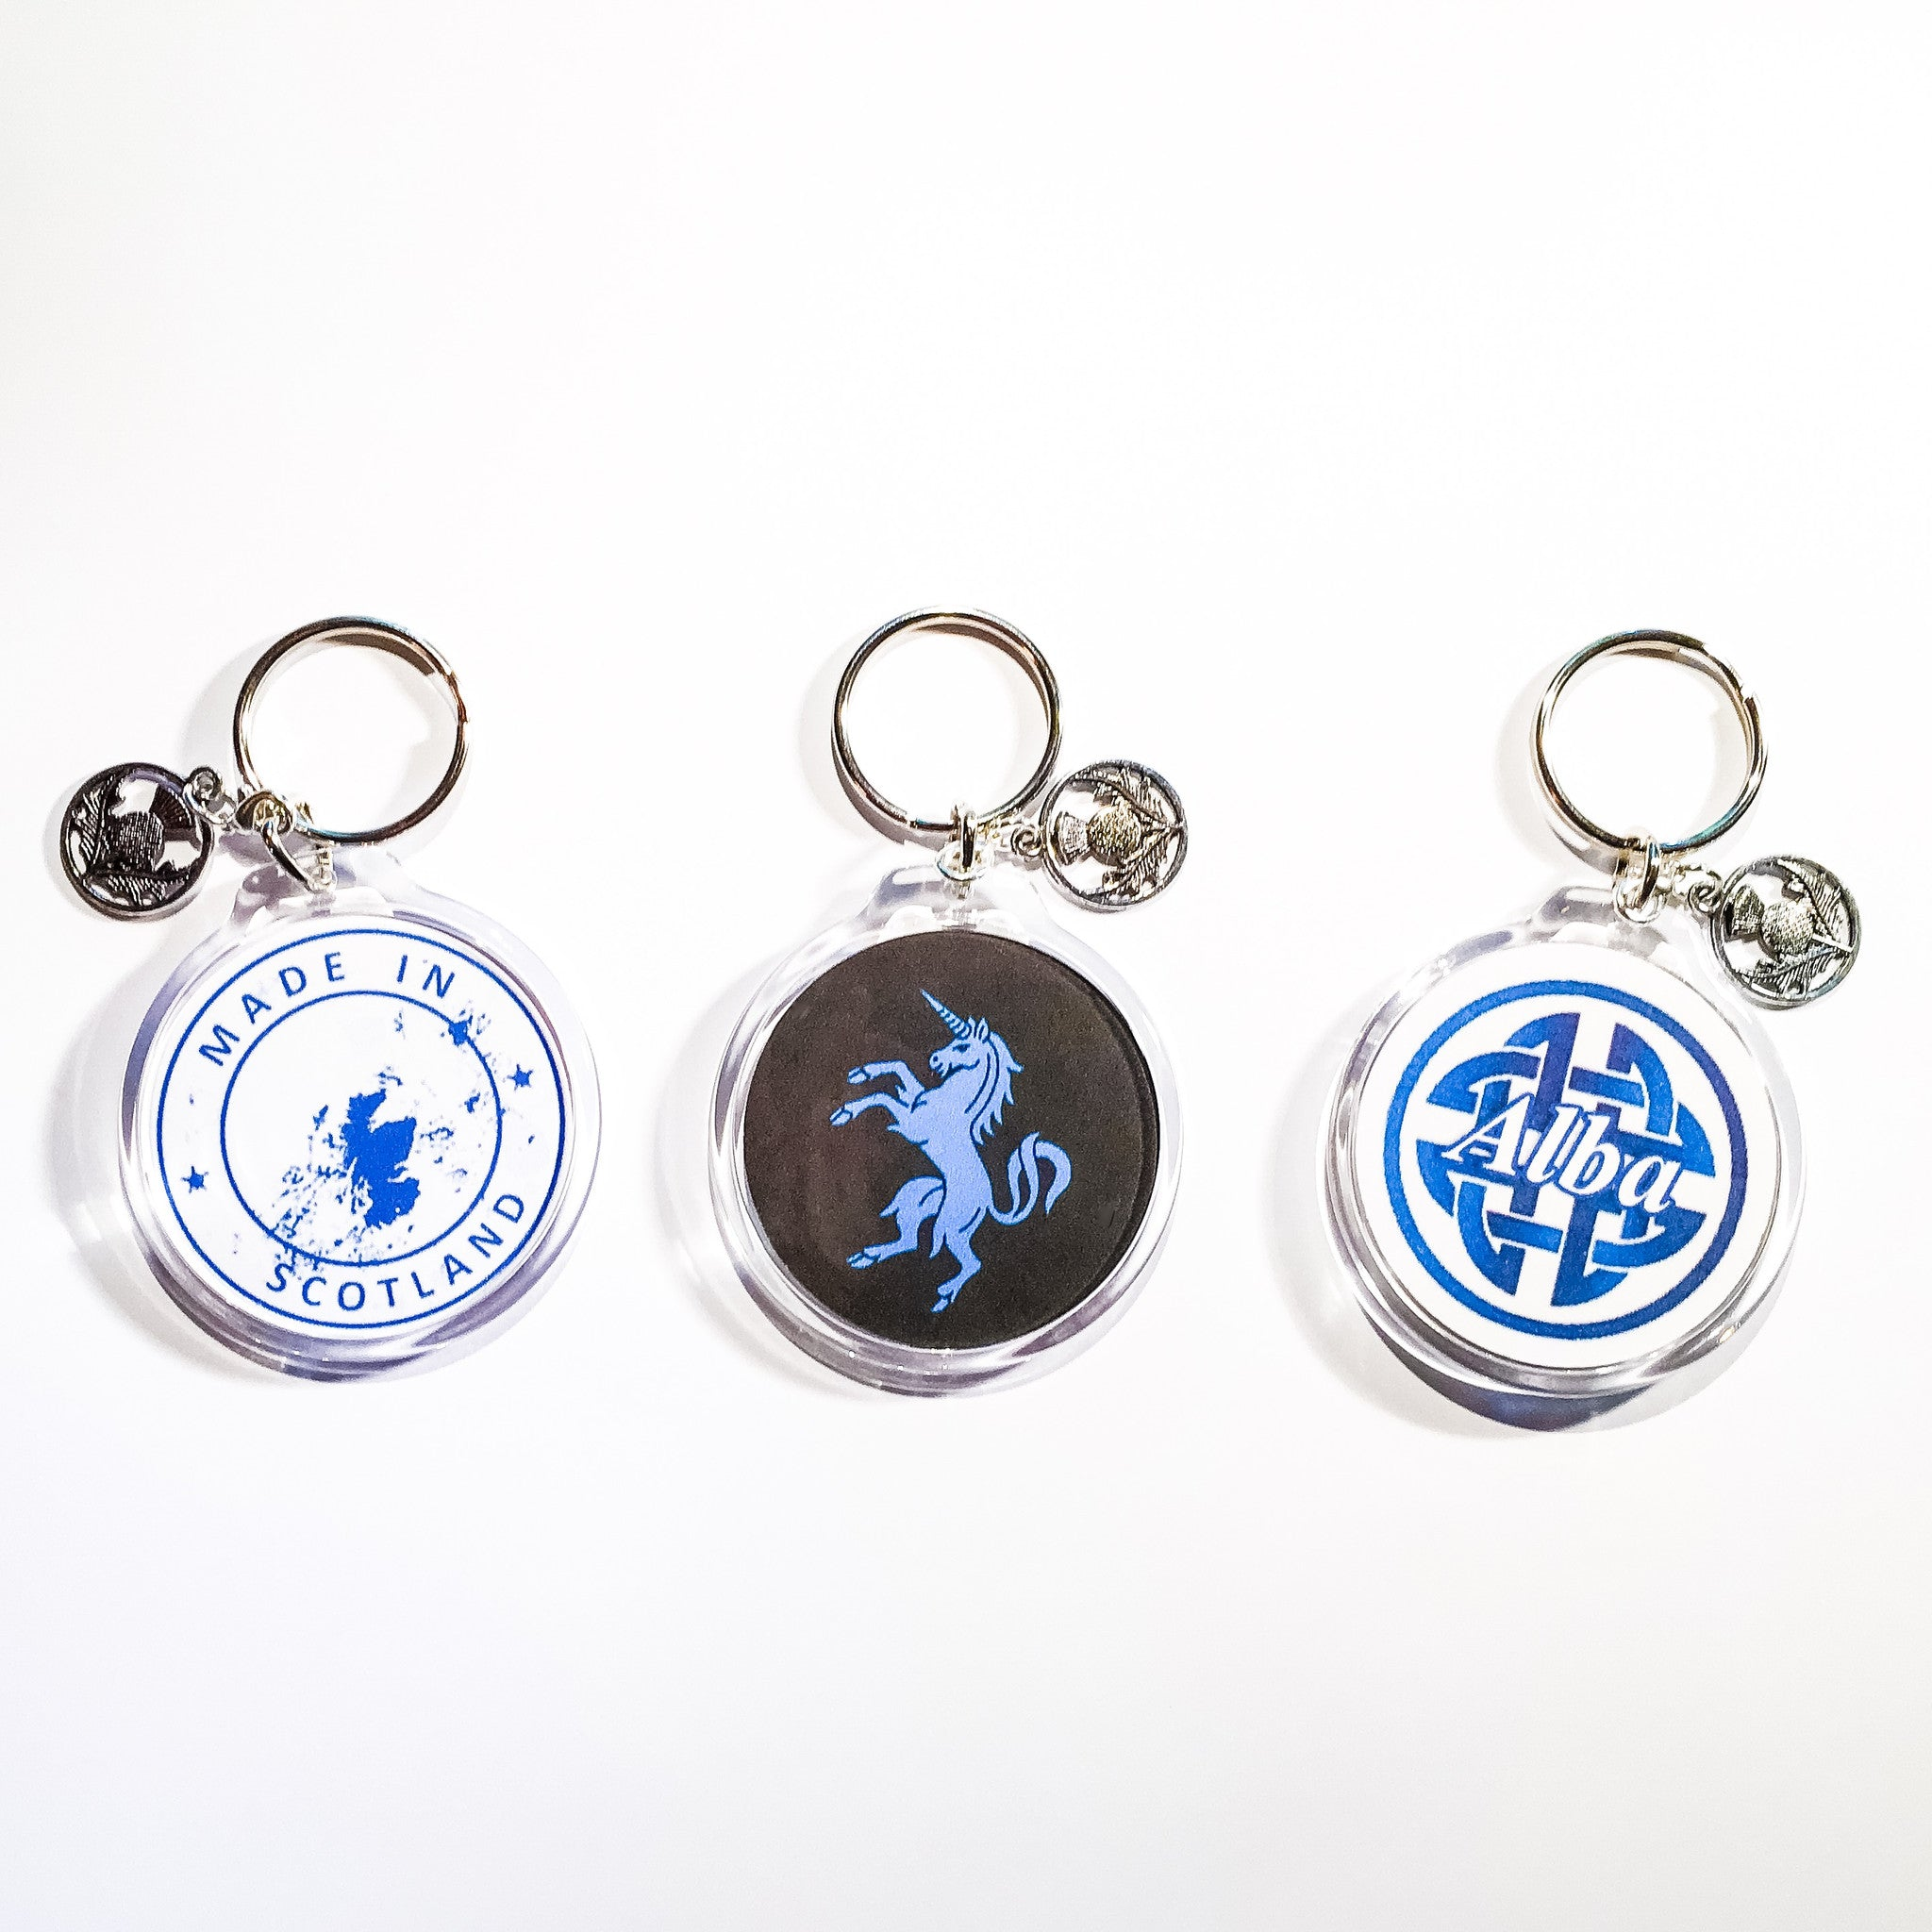 Scotland Design Keychains